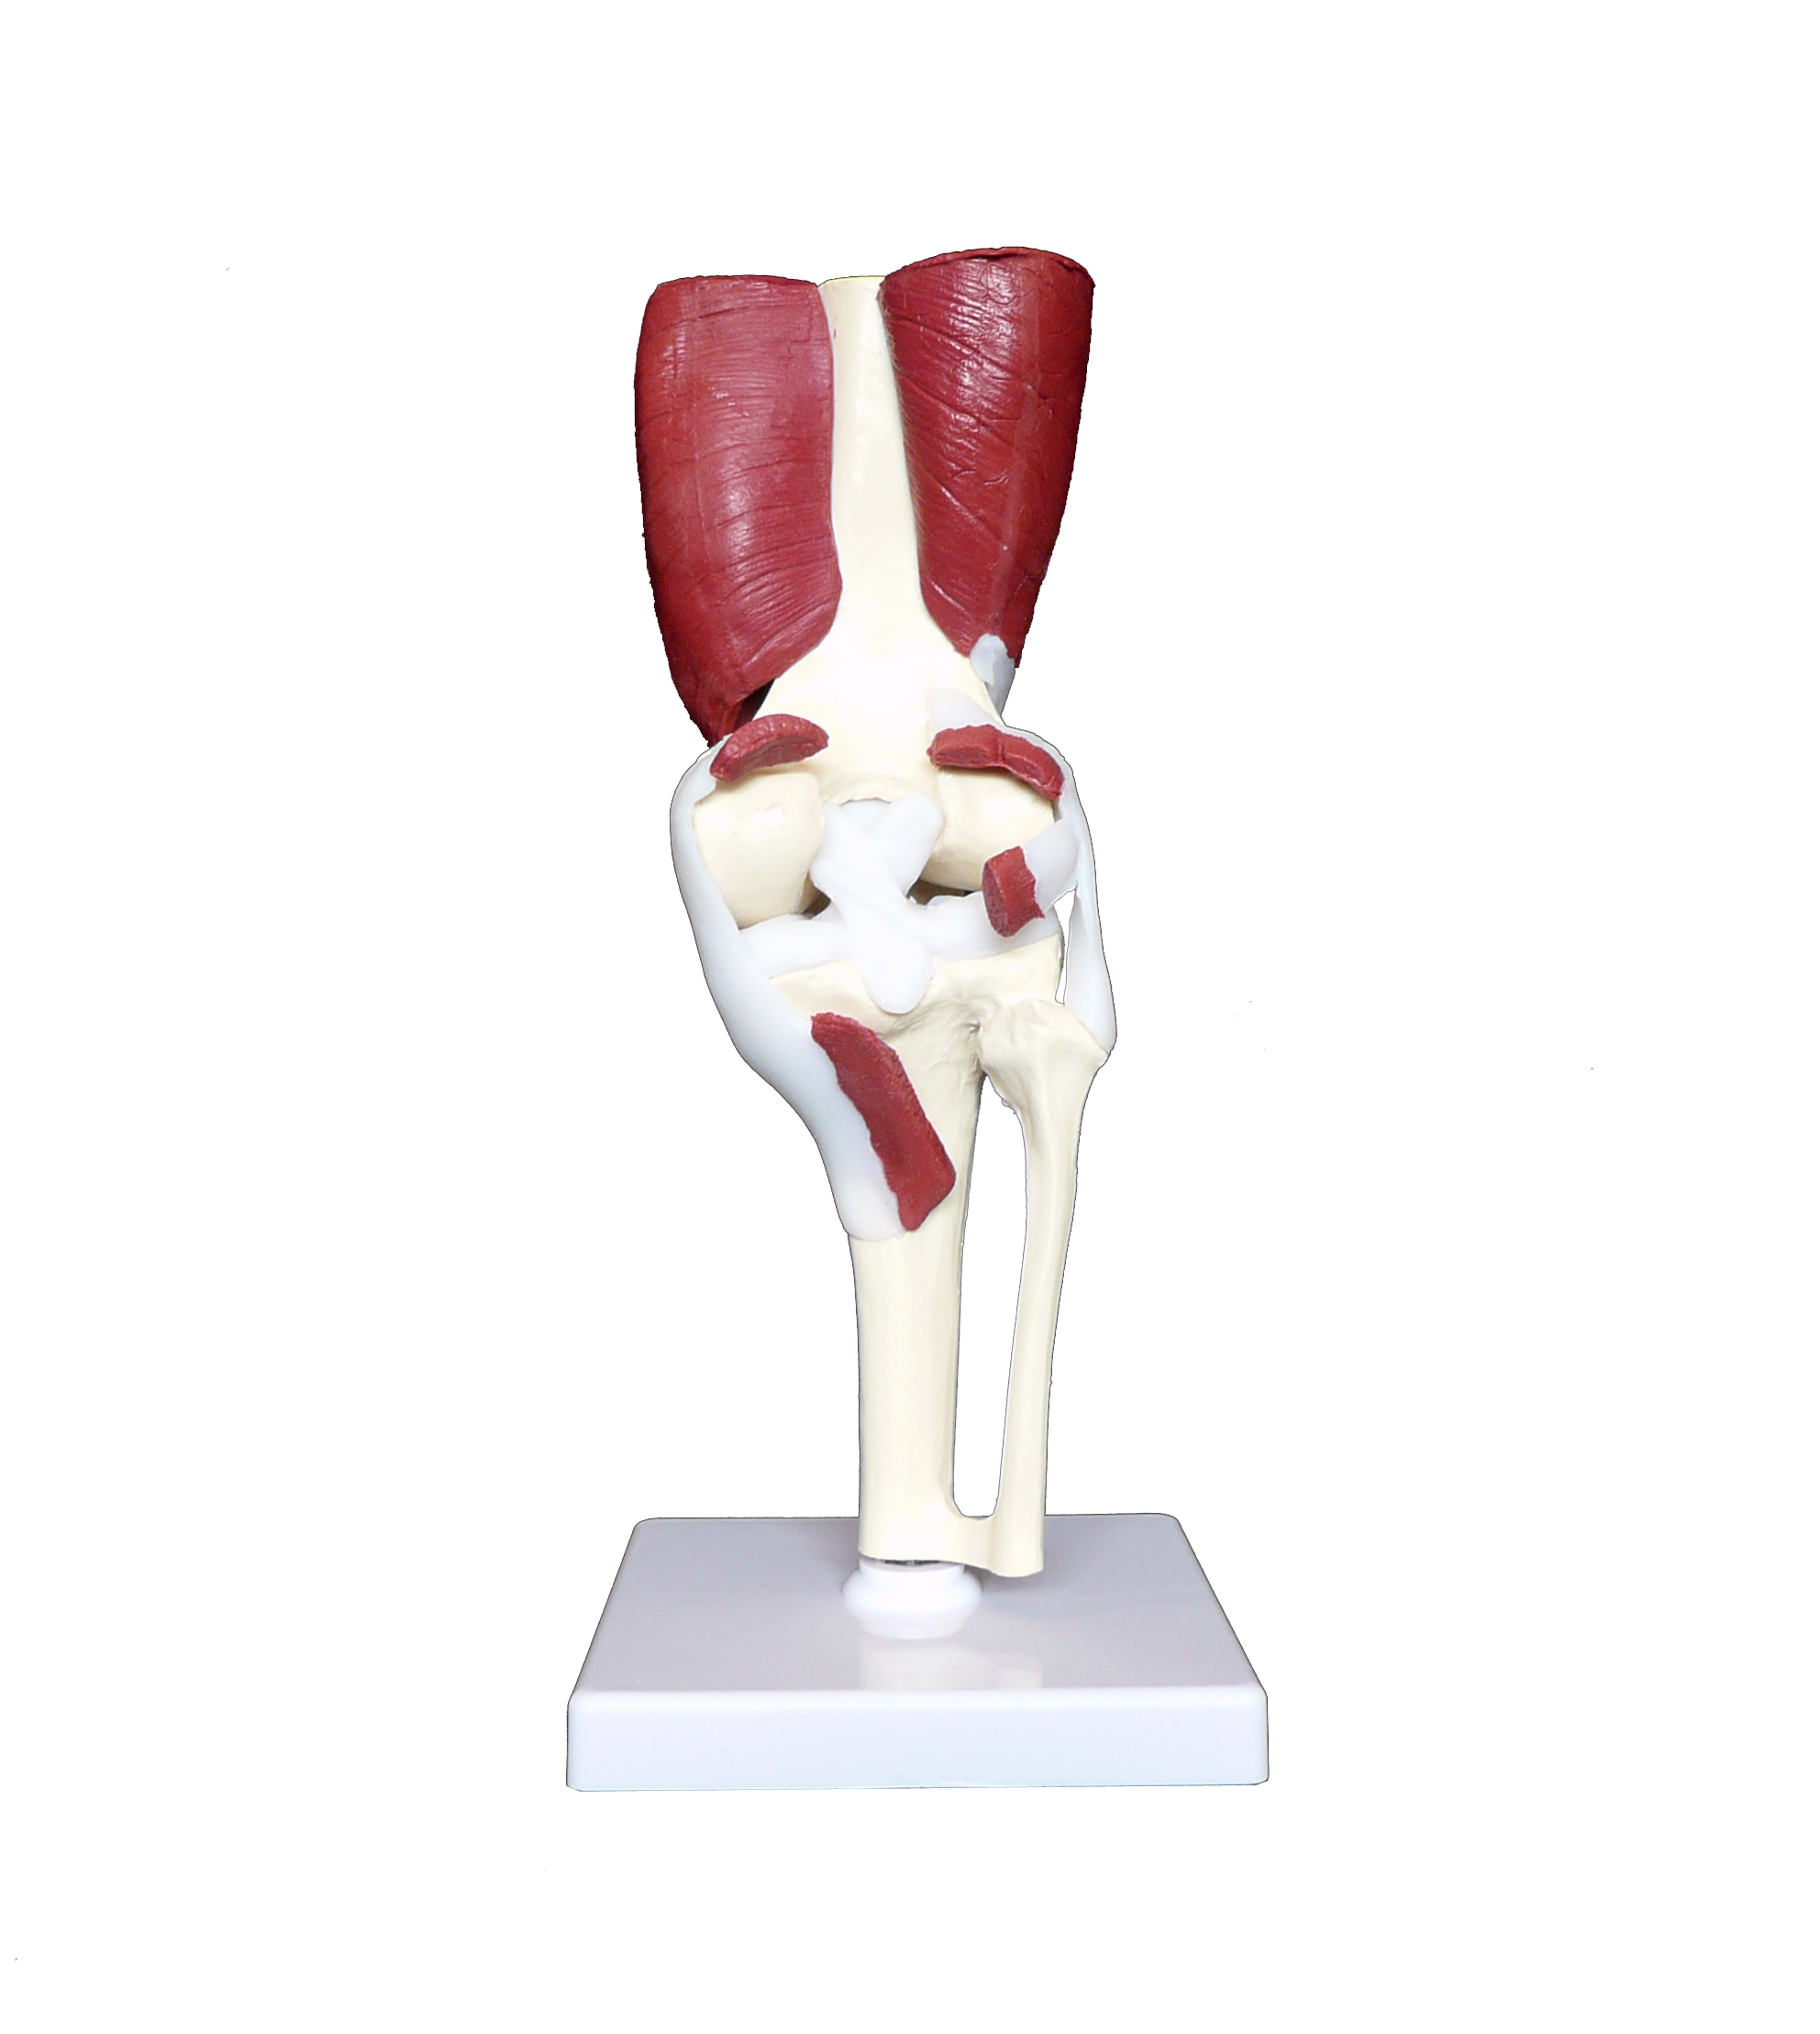 Anatomical human advanced knee joint muscle model joint models anatomical human advanced knee joint muscle model 00139 ccuart Images